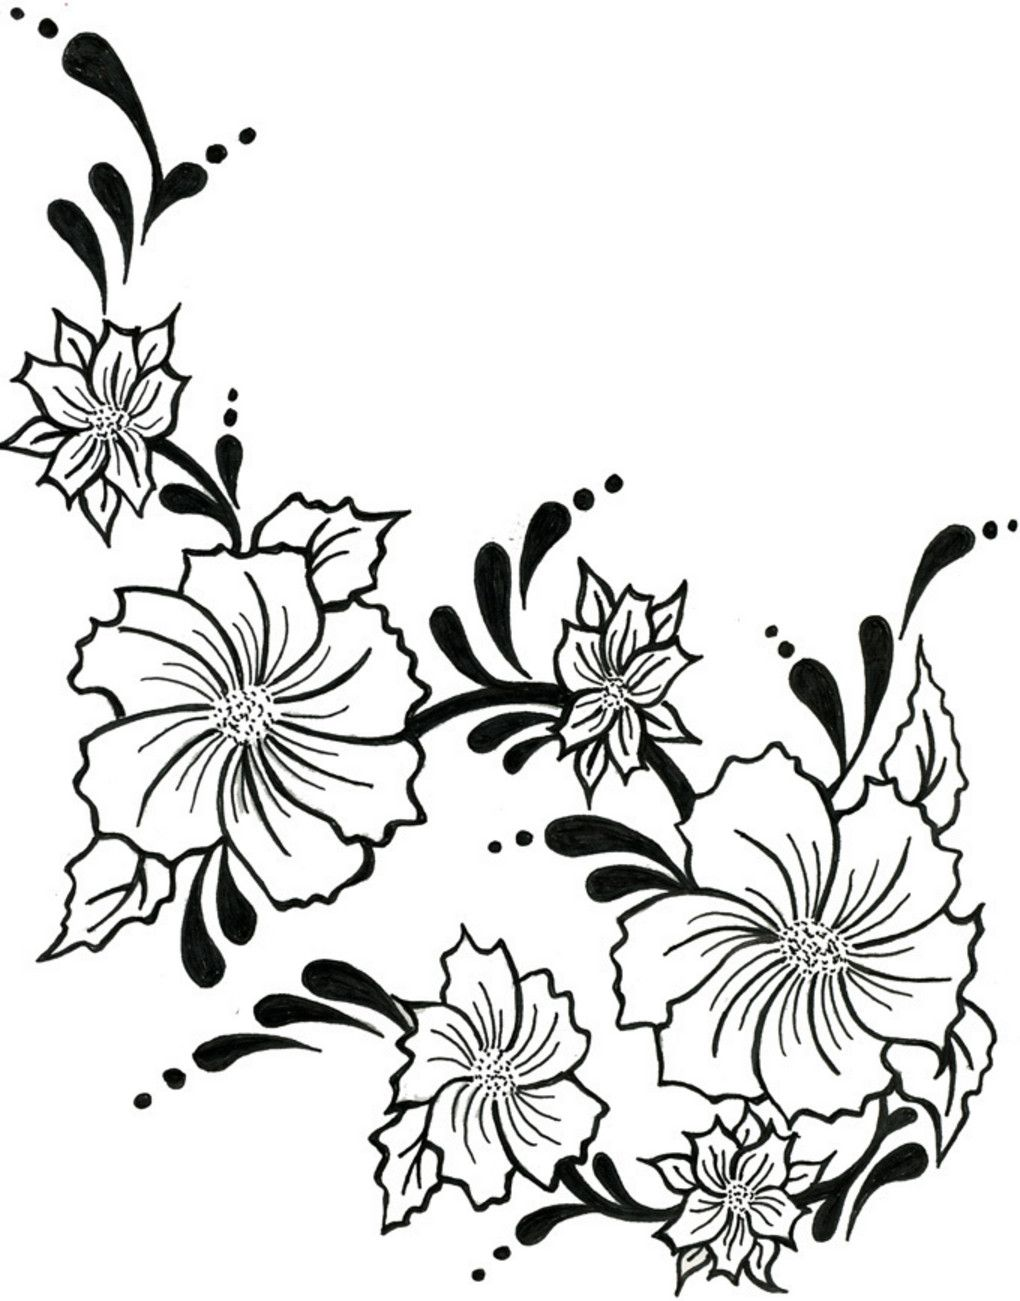 1020x1301 Flower Drawings In This Picture We Have A Vine Of Tattoo Flowers